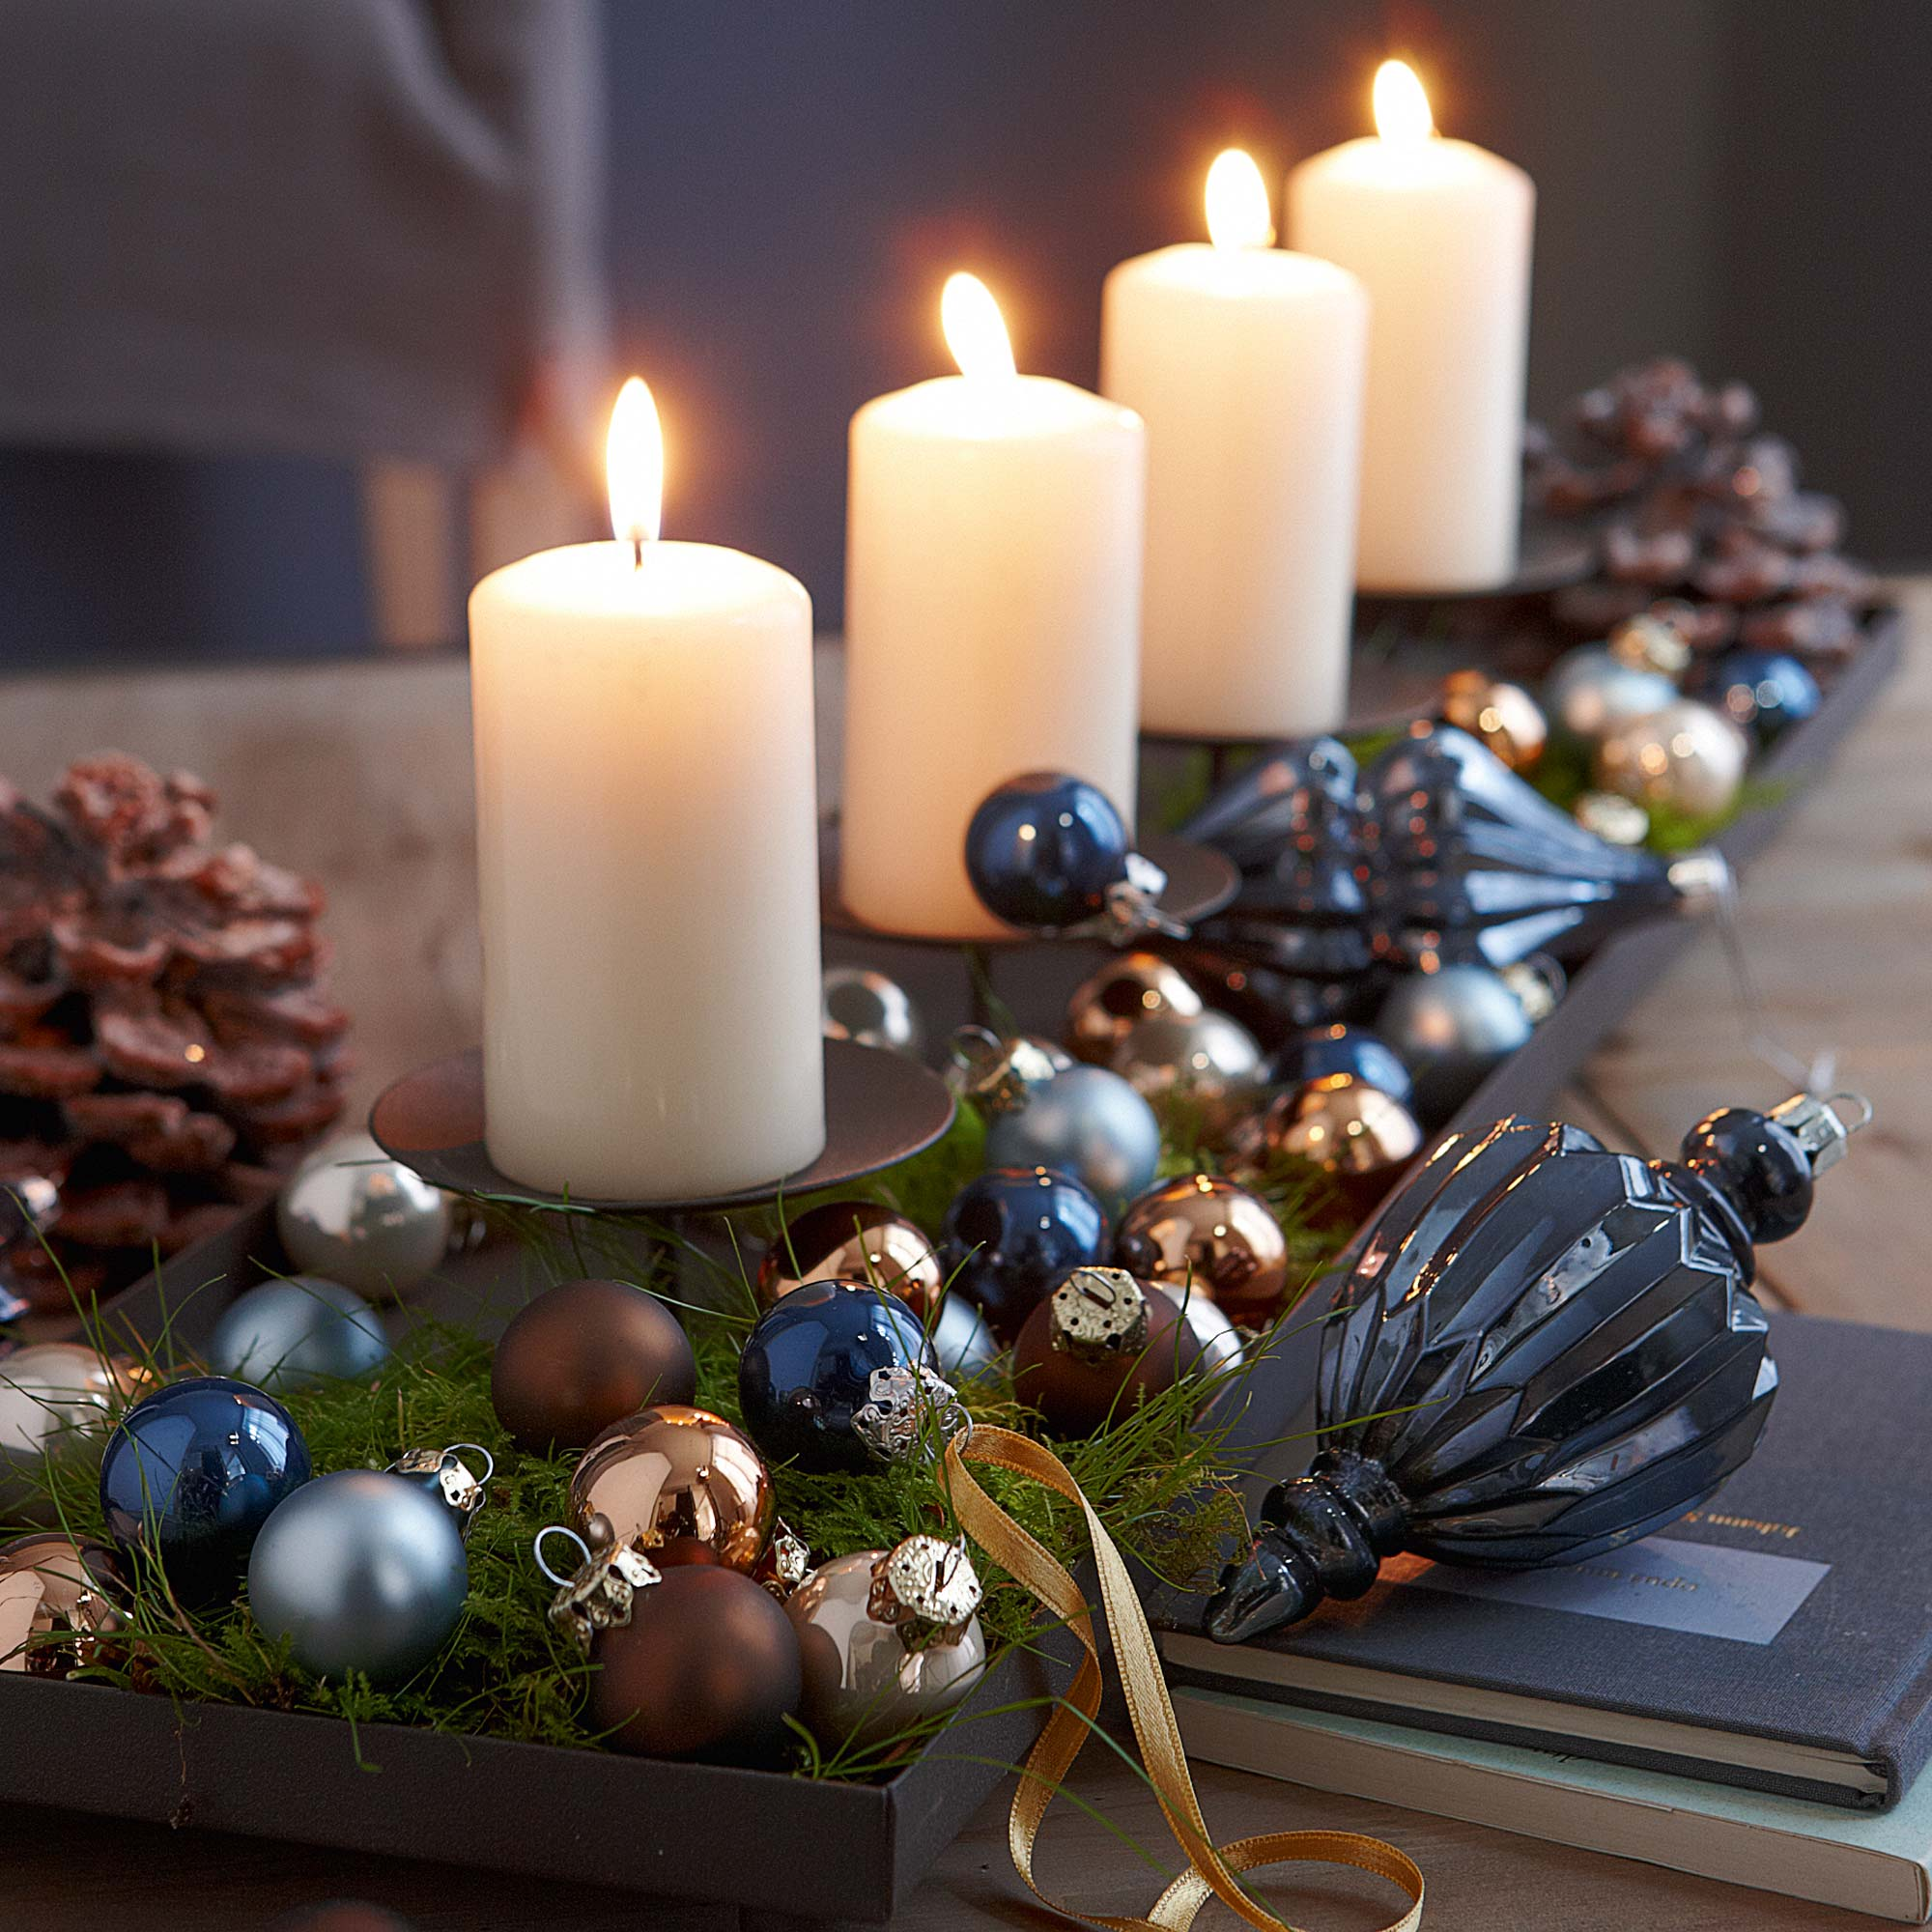 40 Scintillating Christmas Candle Decoration Ideas - All About Christmas